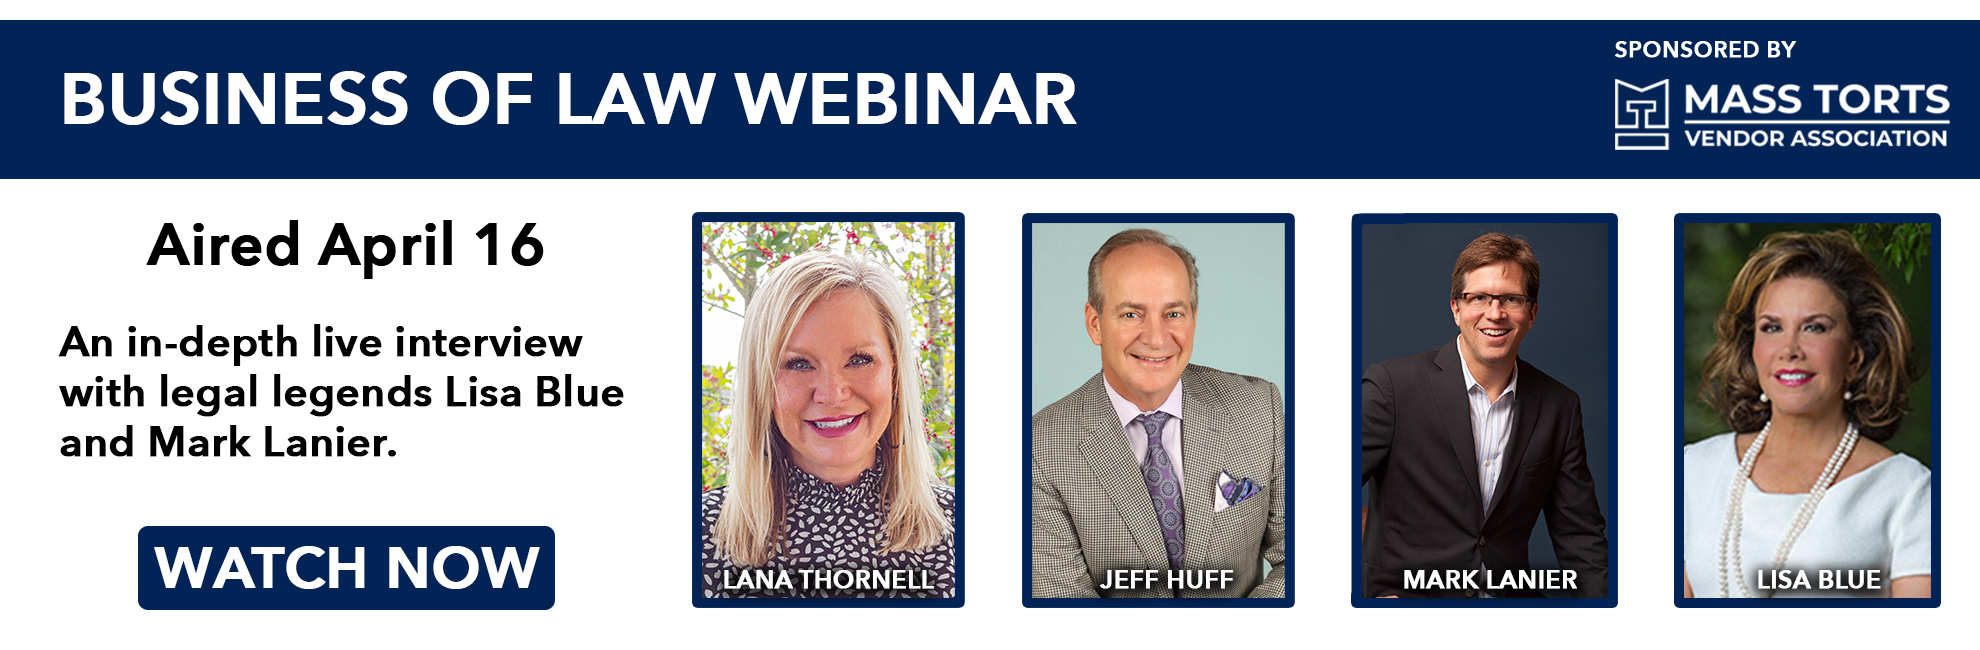 April 16th, 2020 - Business of Law Webinar